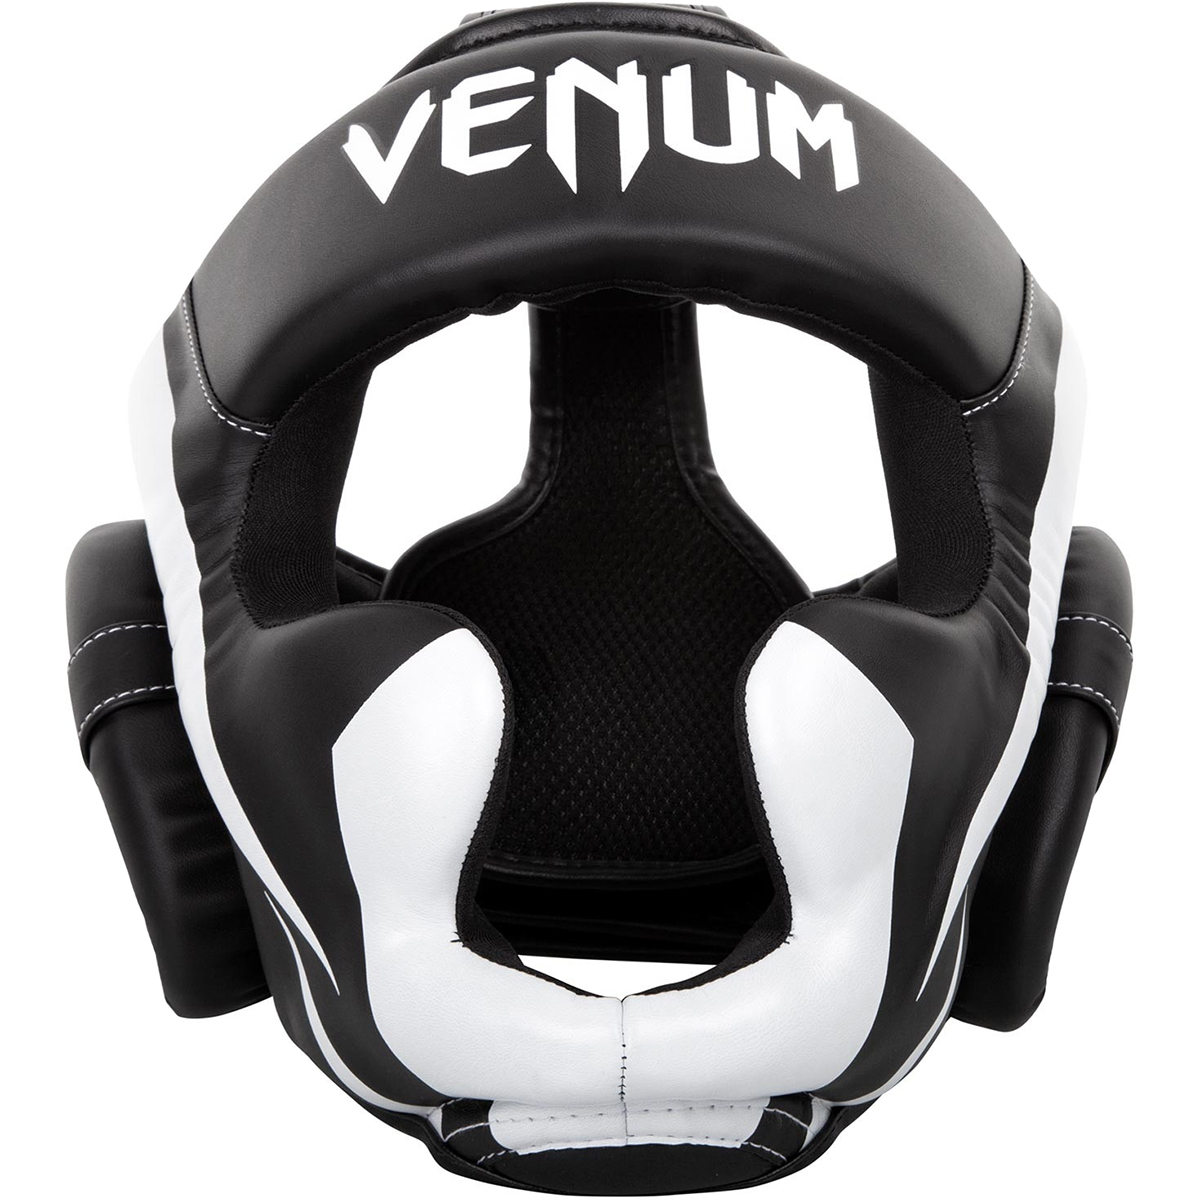 Venum-Elite-Boxing-Headgear thumbnail 13